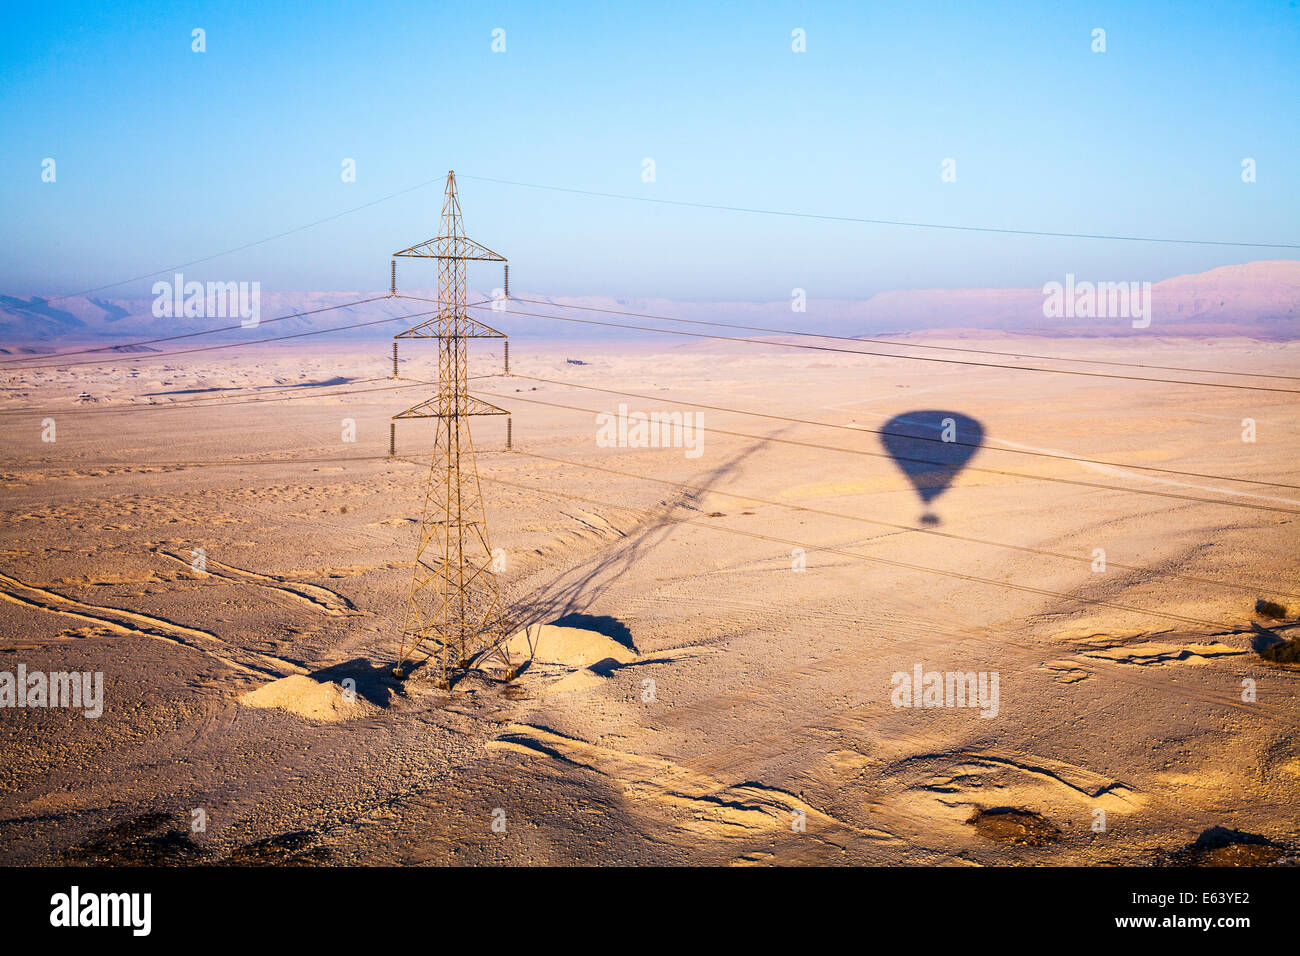 The shadow of a hot air balloon and an electricity pylon over the desert of the West Bank of the Nile in Egypt at - Stock Image